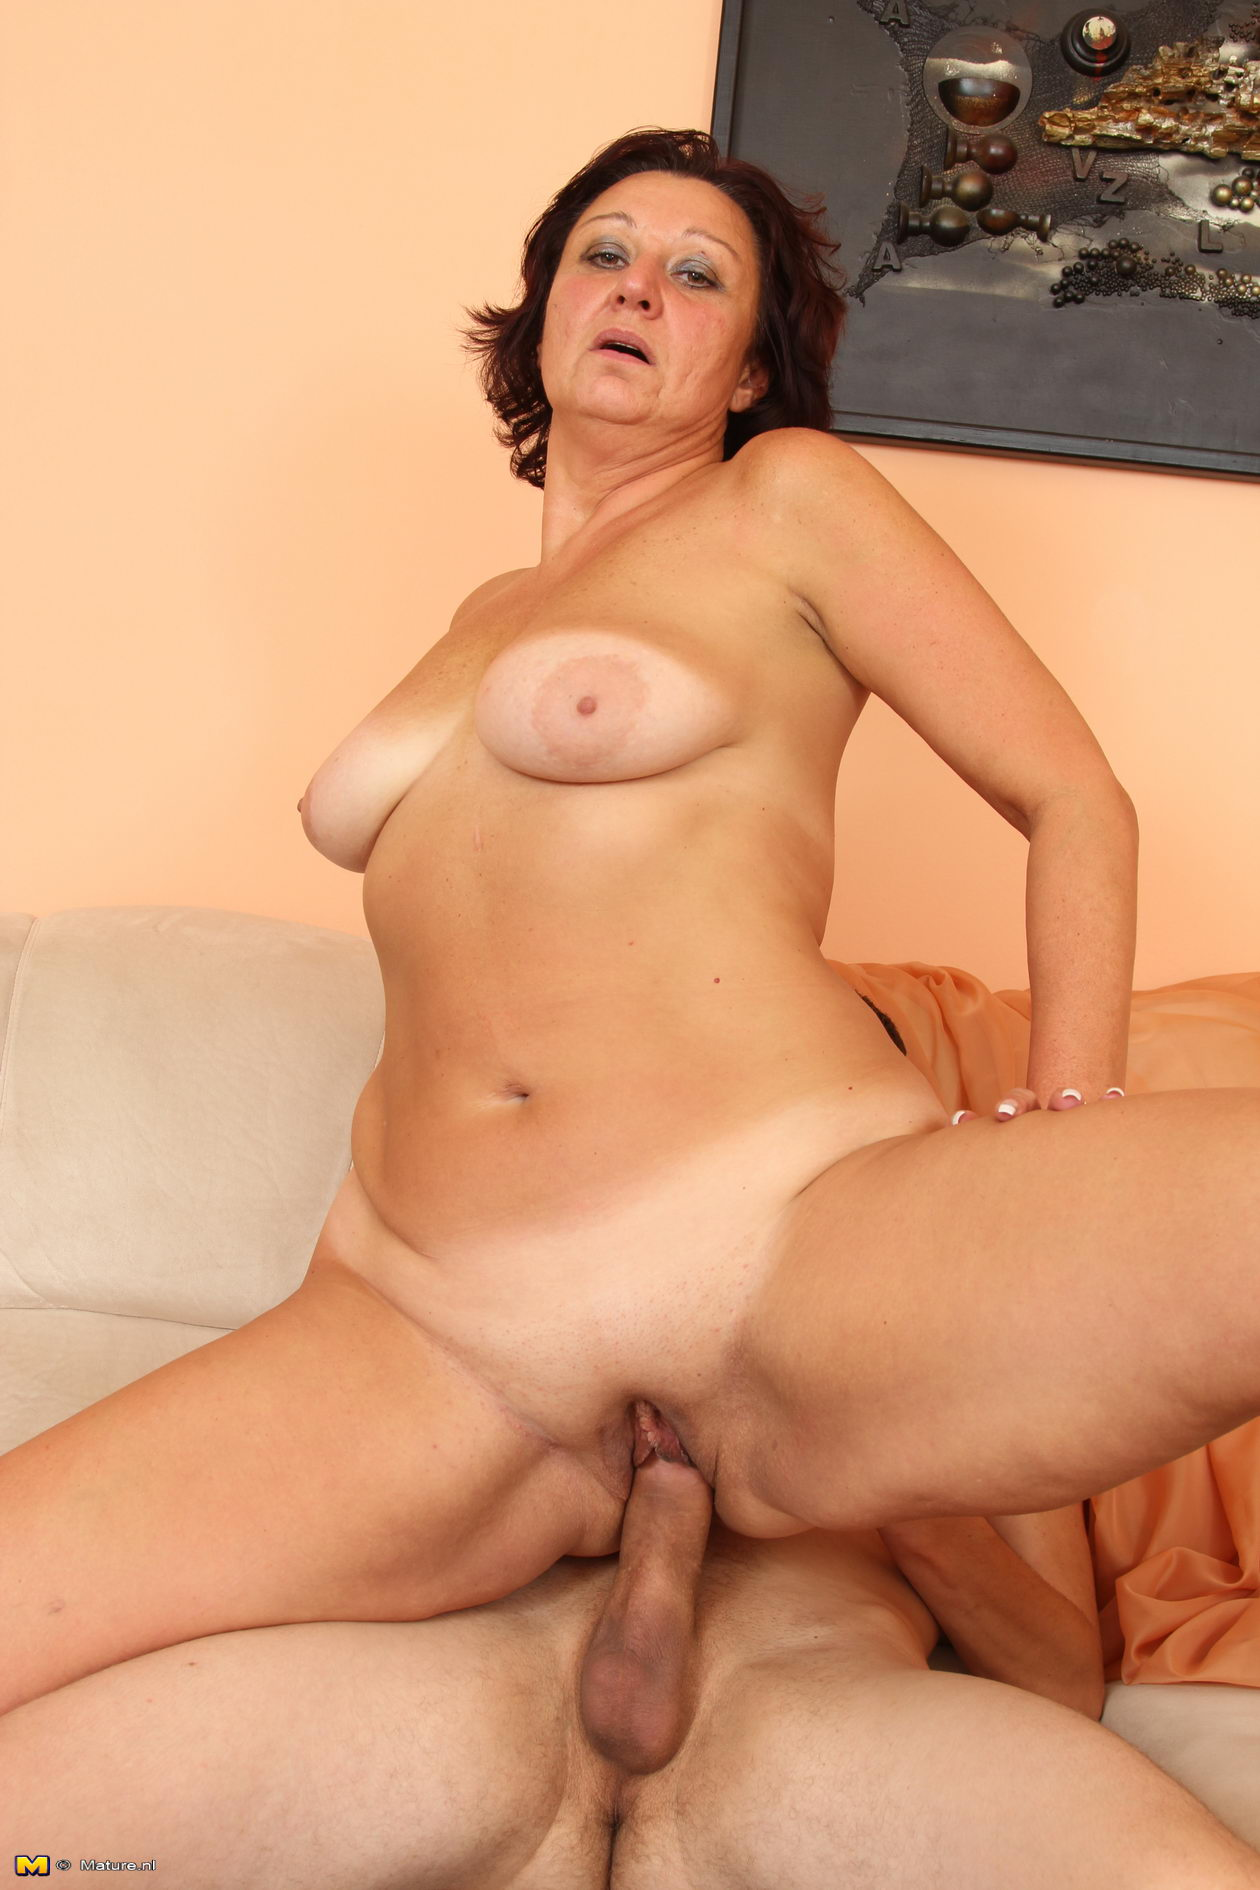 dorothy le may porn star